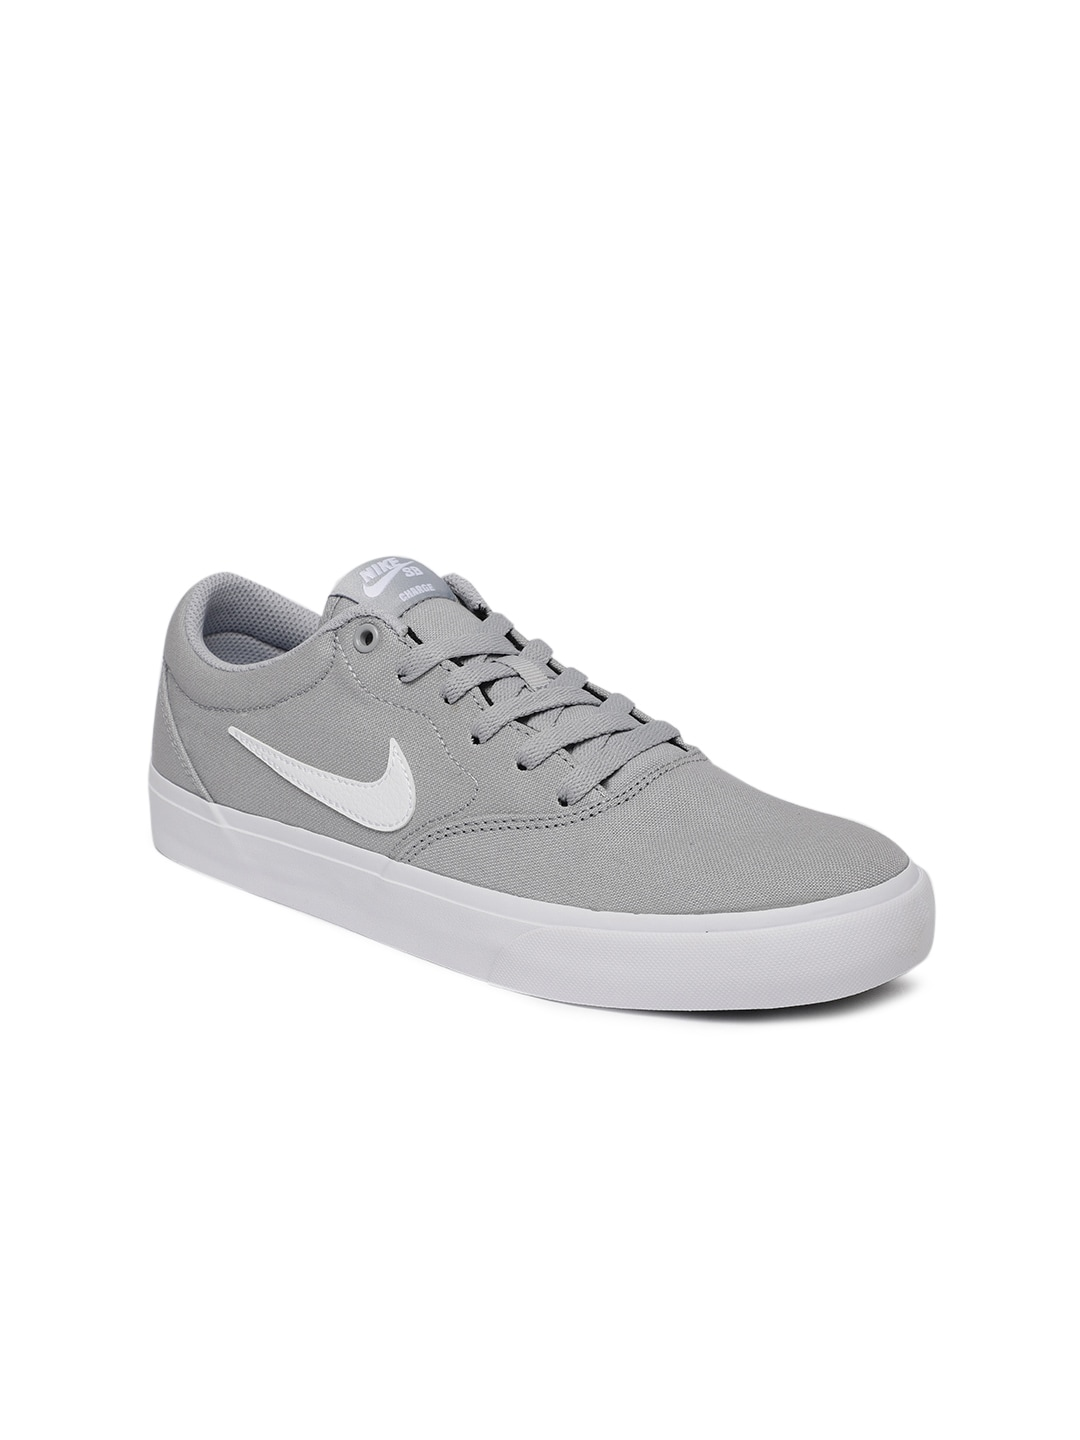 new style f69c0 a4049 Nike Canvas Shoes   Buy Nike Canvas Shoes Online in India at Best Price